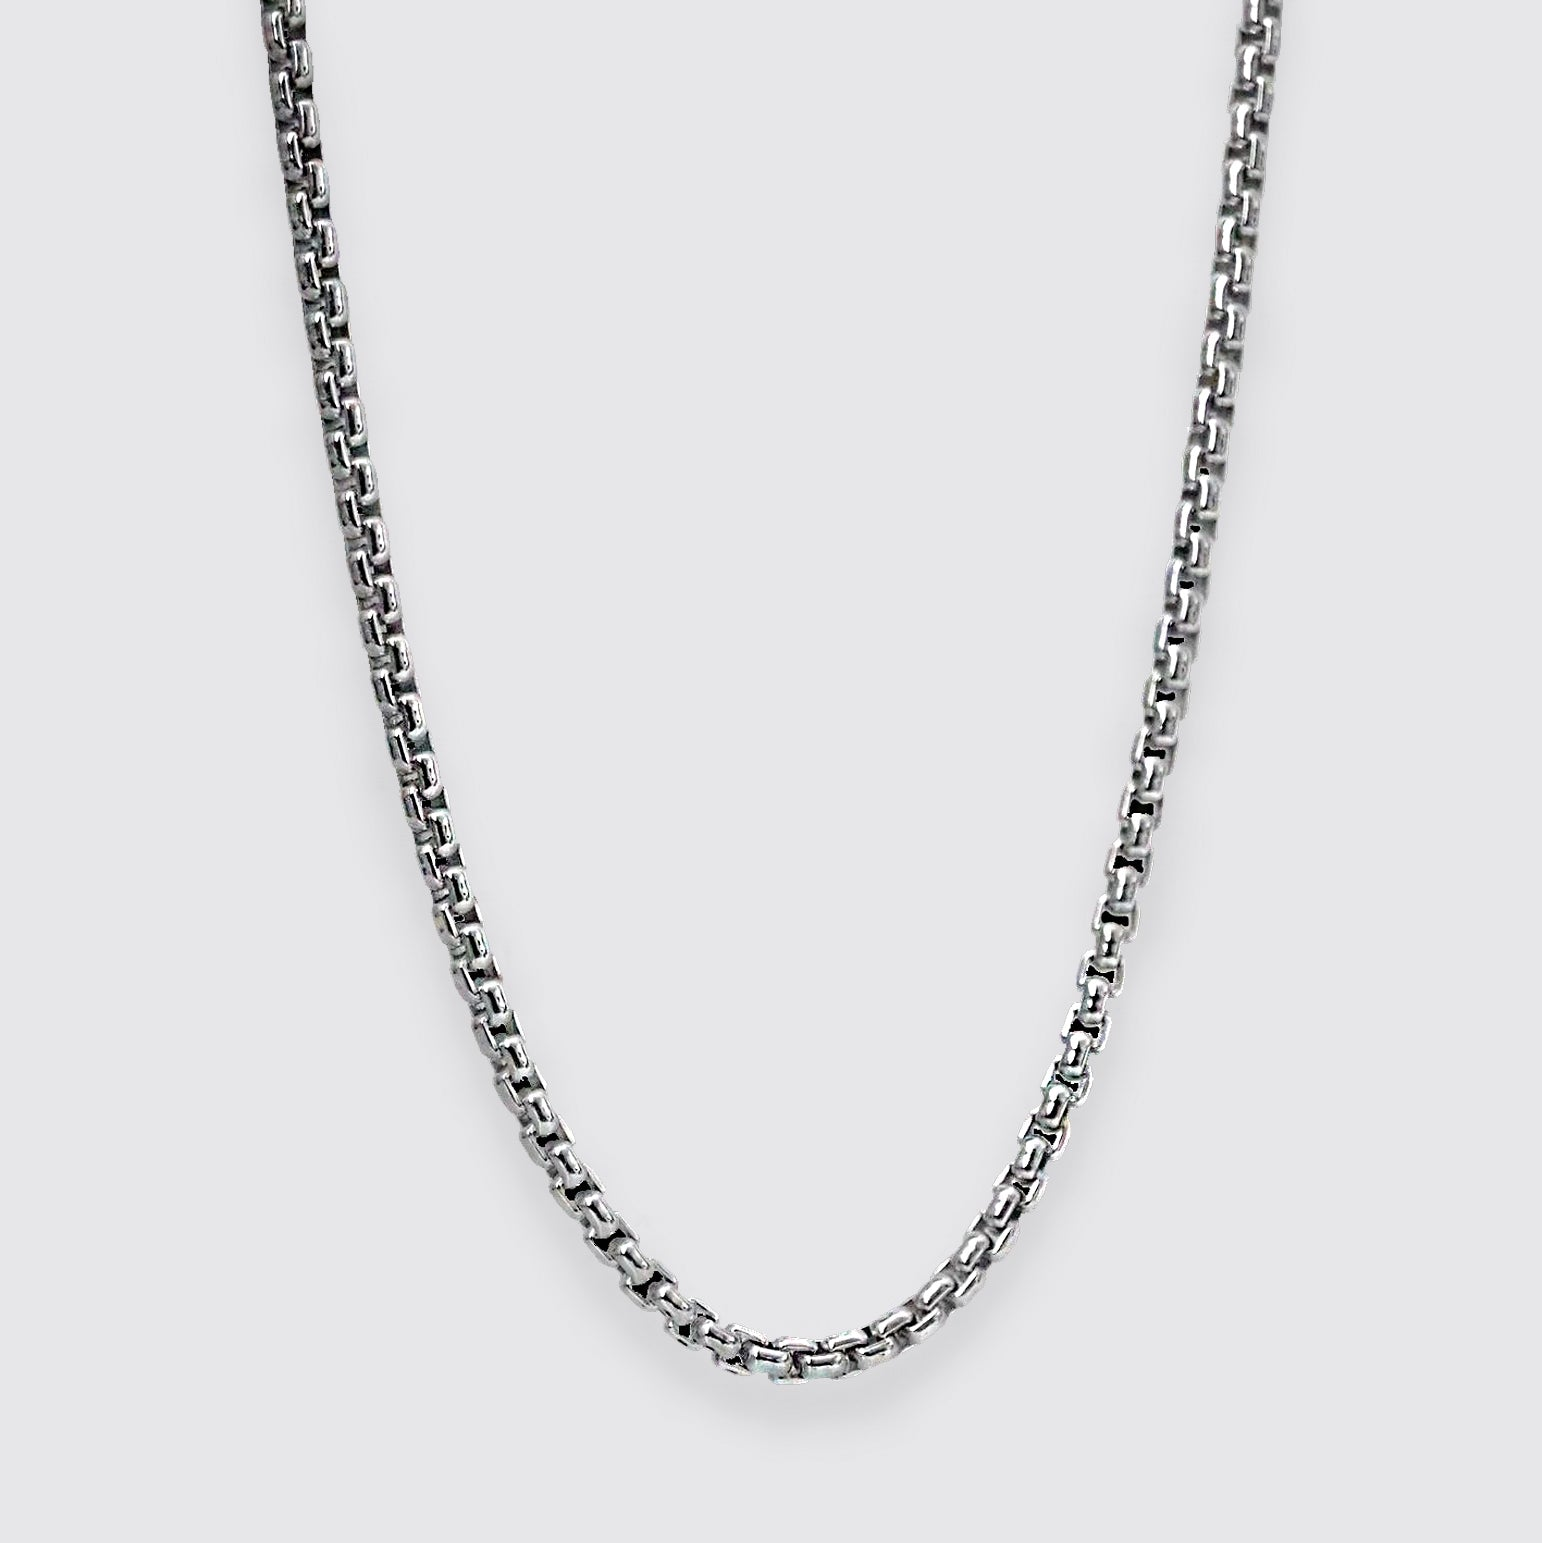 Mahal Chain, 1.8mm